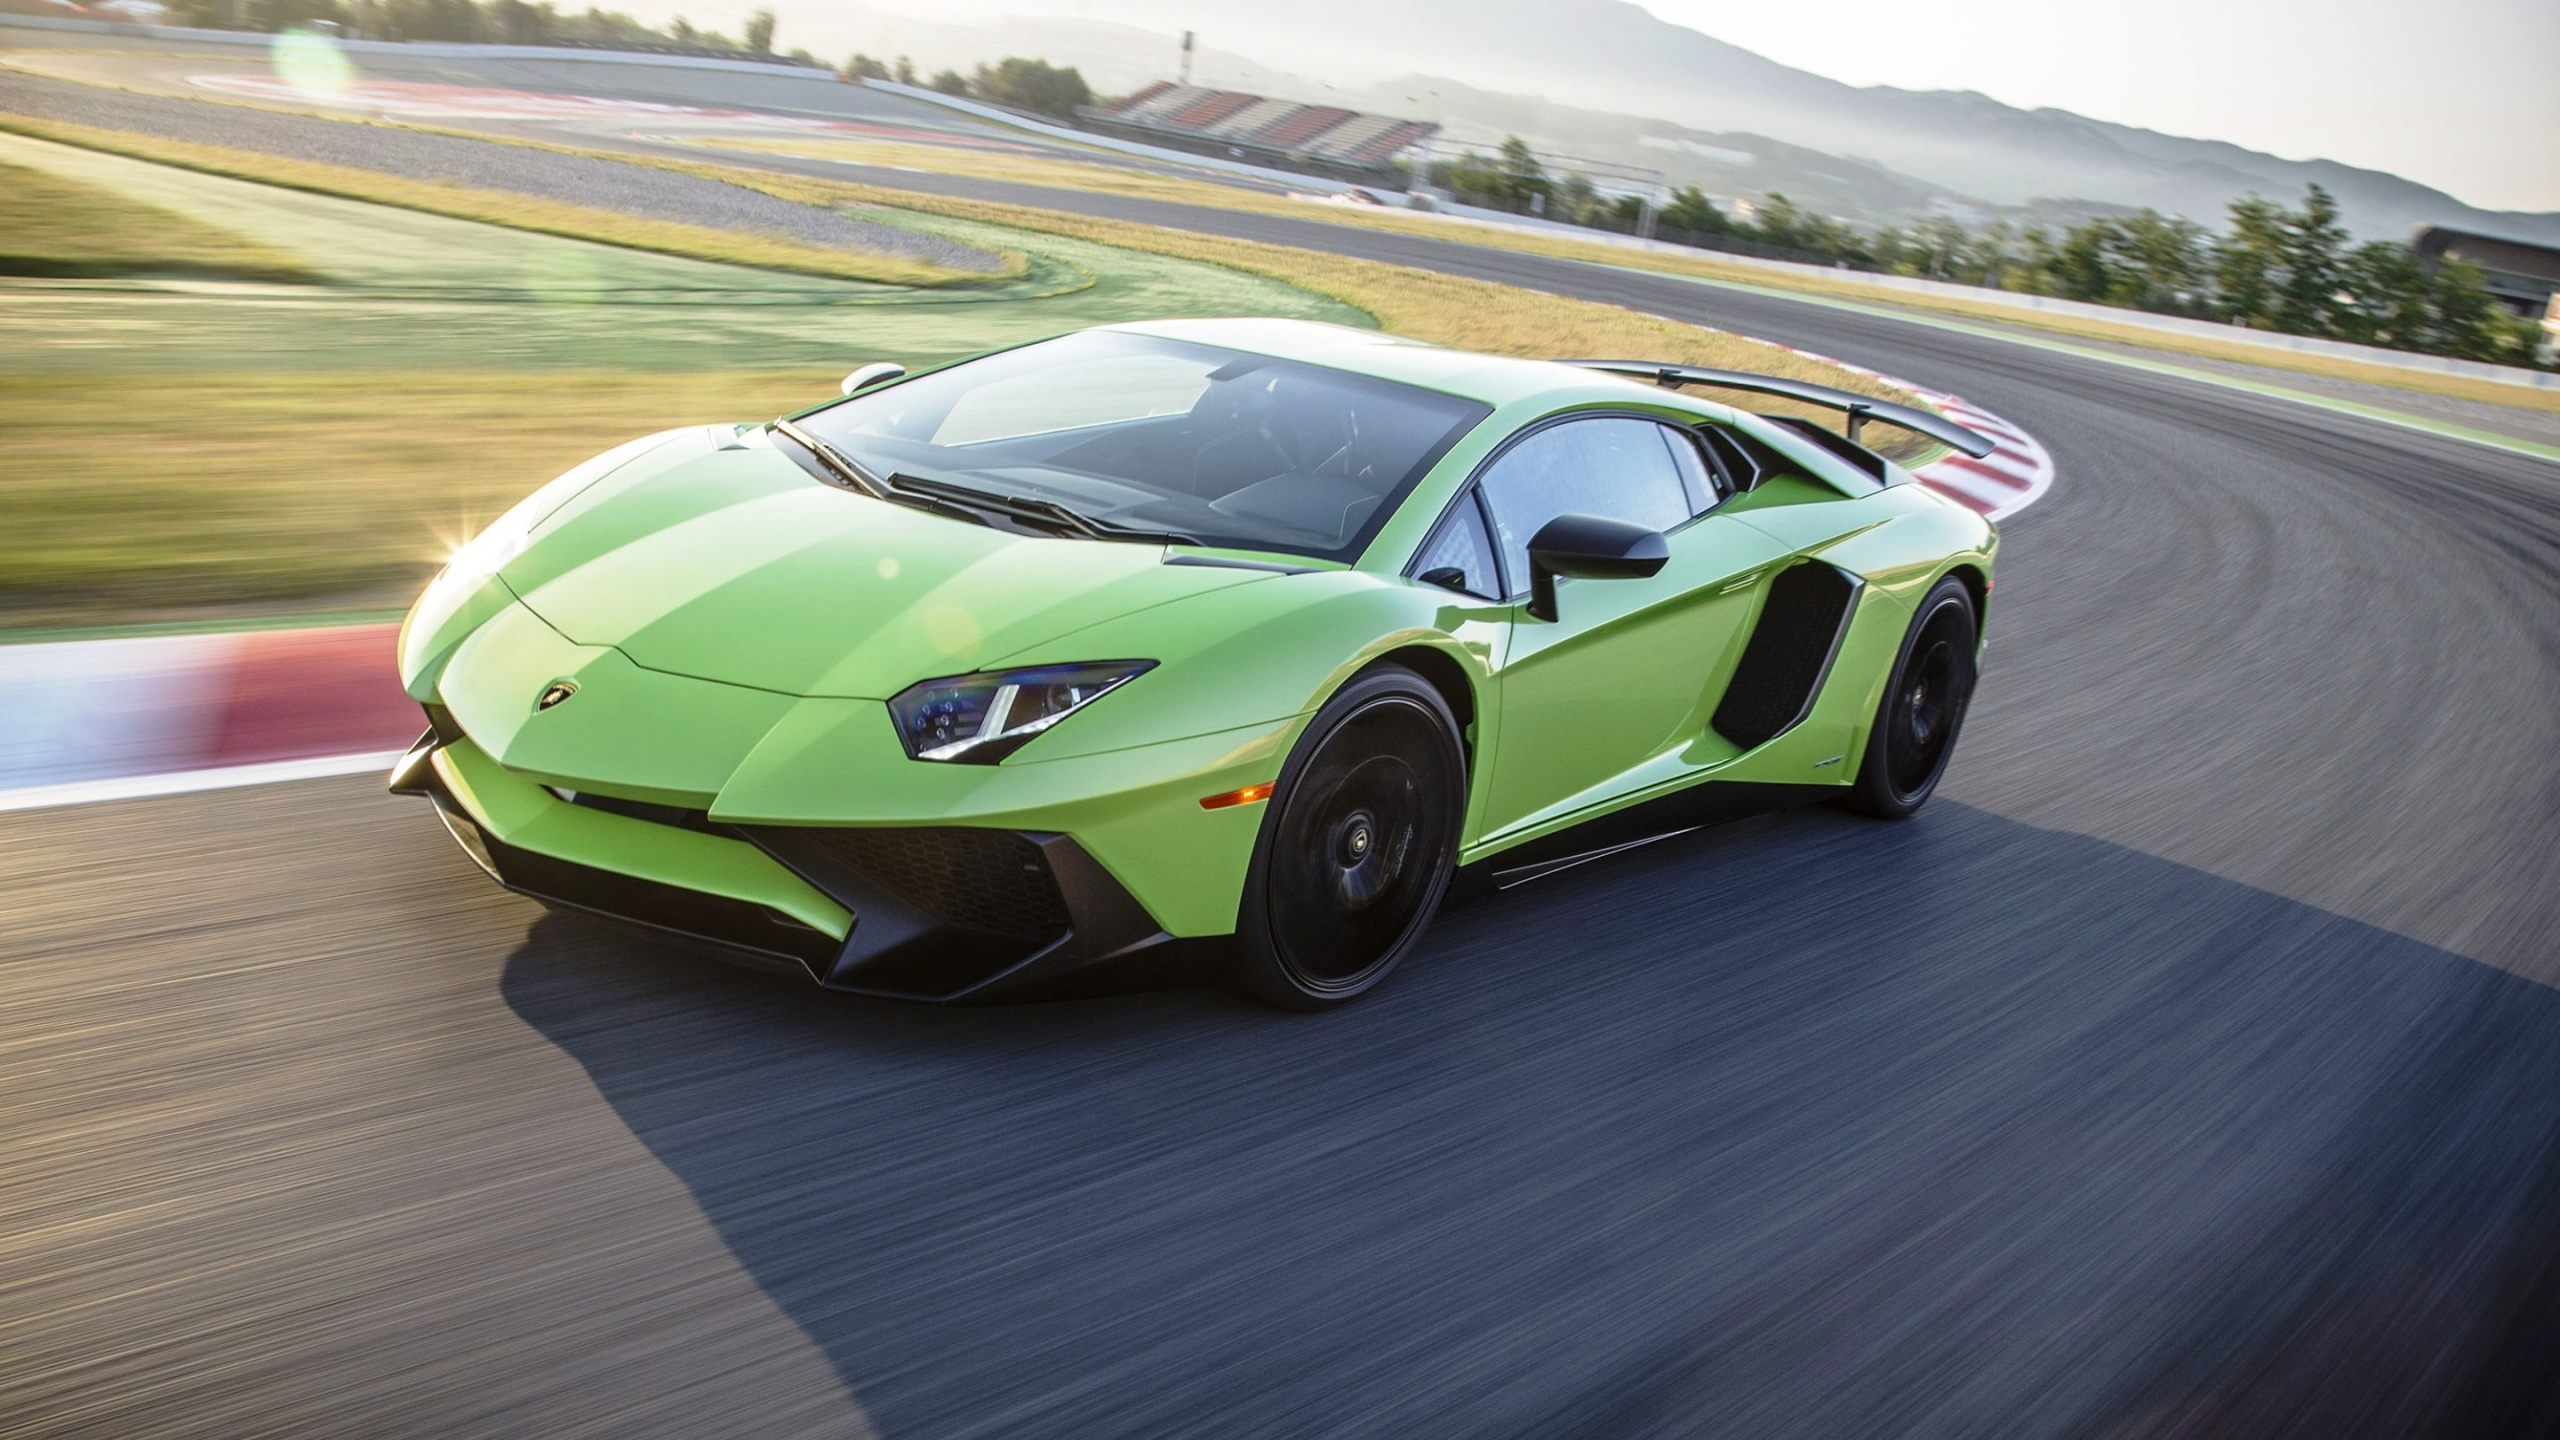 Light Green Lamborghini Aventador Lp750 4 Sv Wallpapers 2560x1440 927863